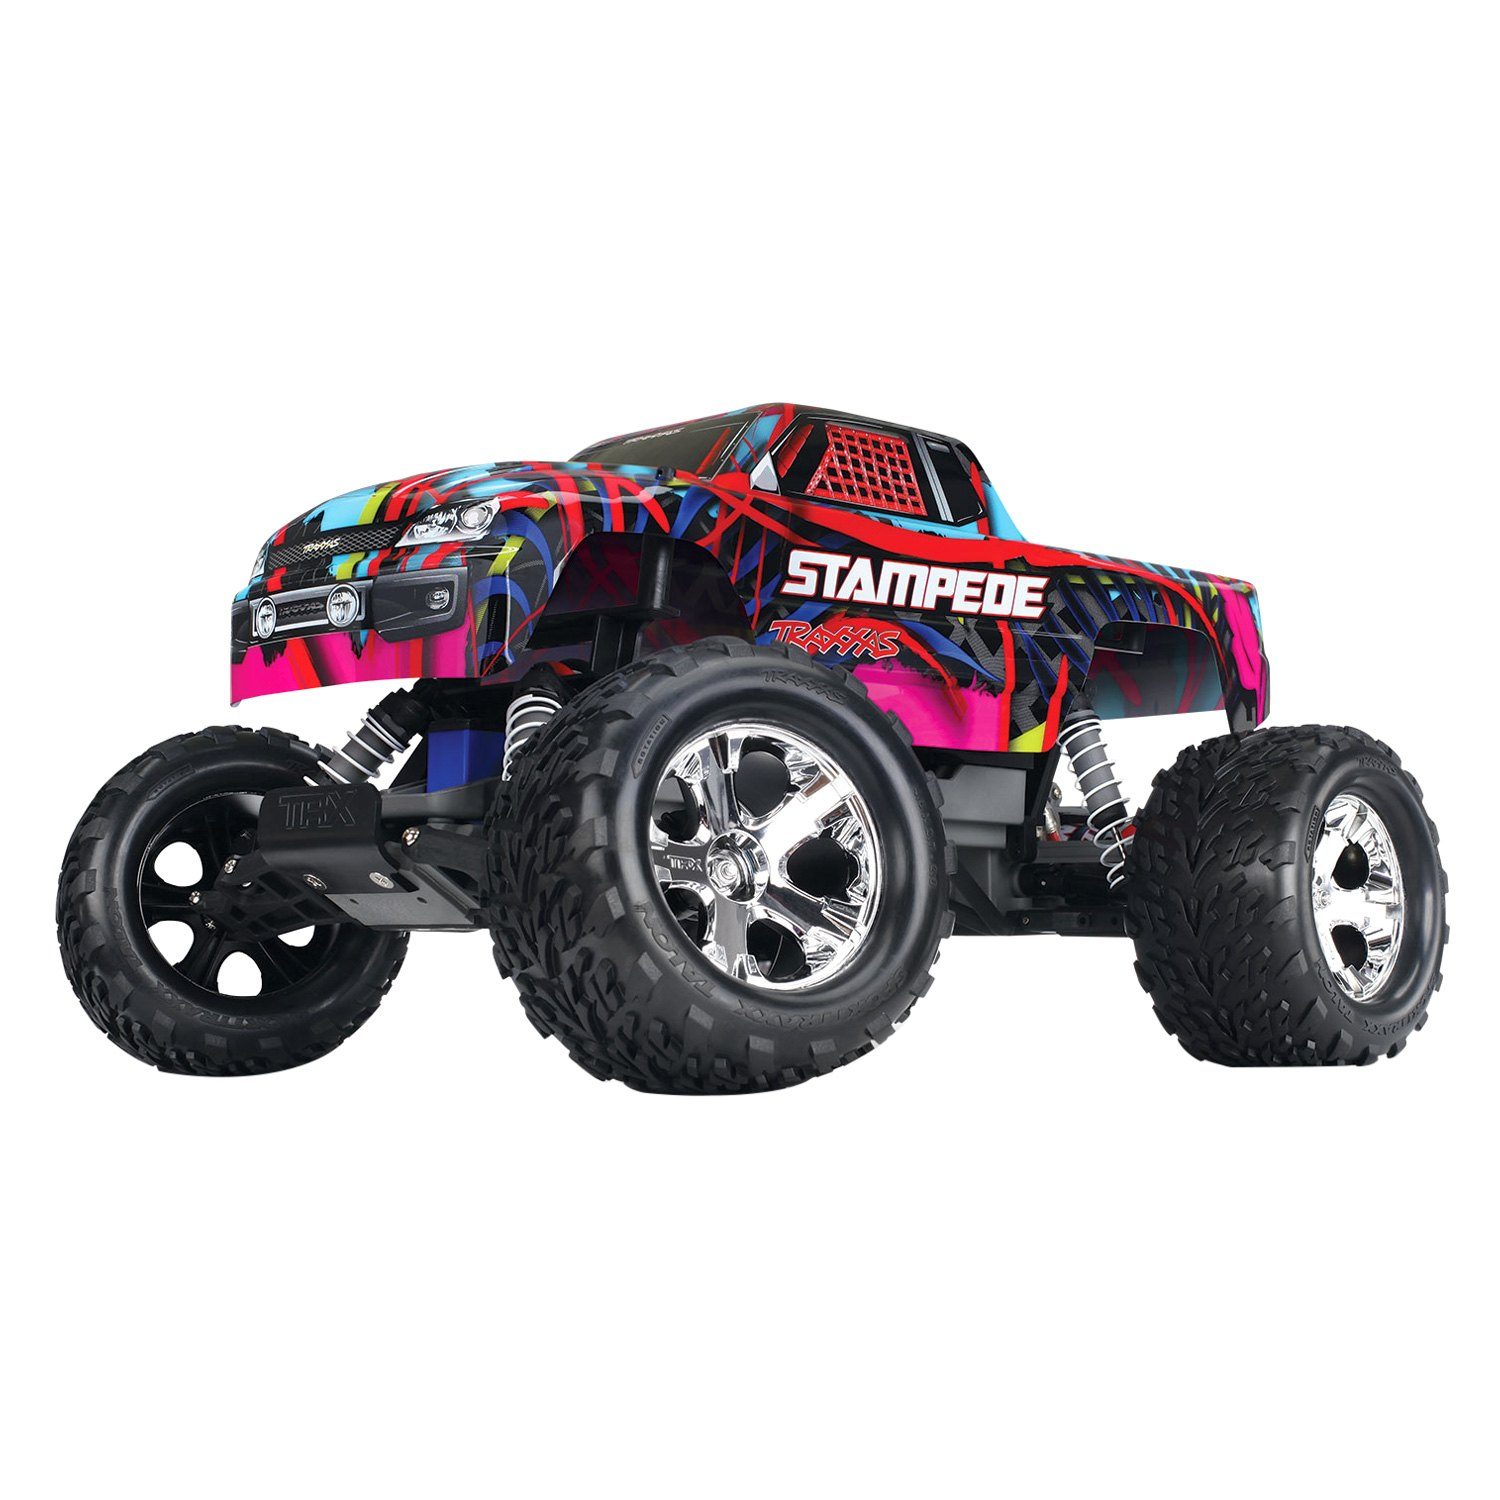 Traxxas Stampede Series 1 10 Scale Hawaiian 2WD Electric Monster Truck